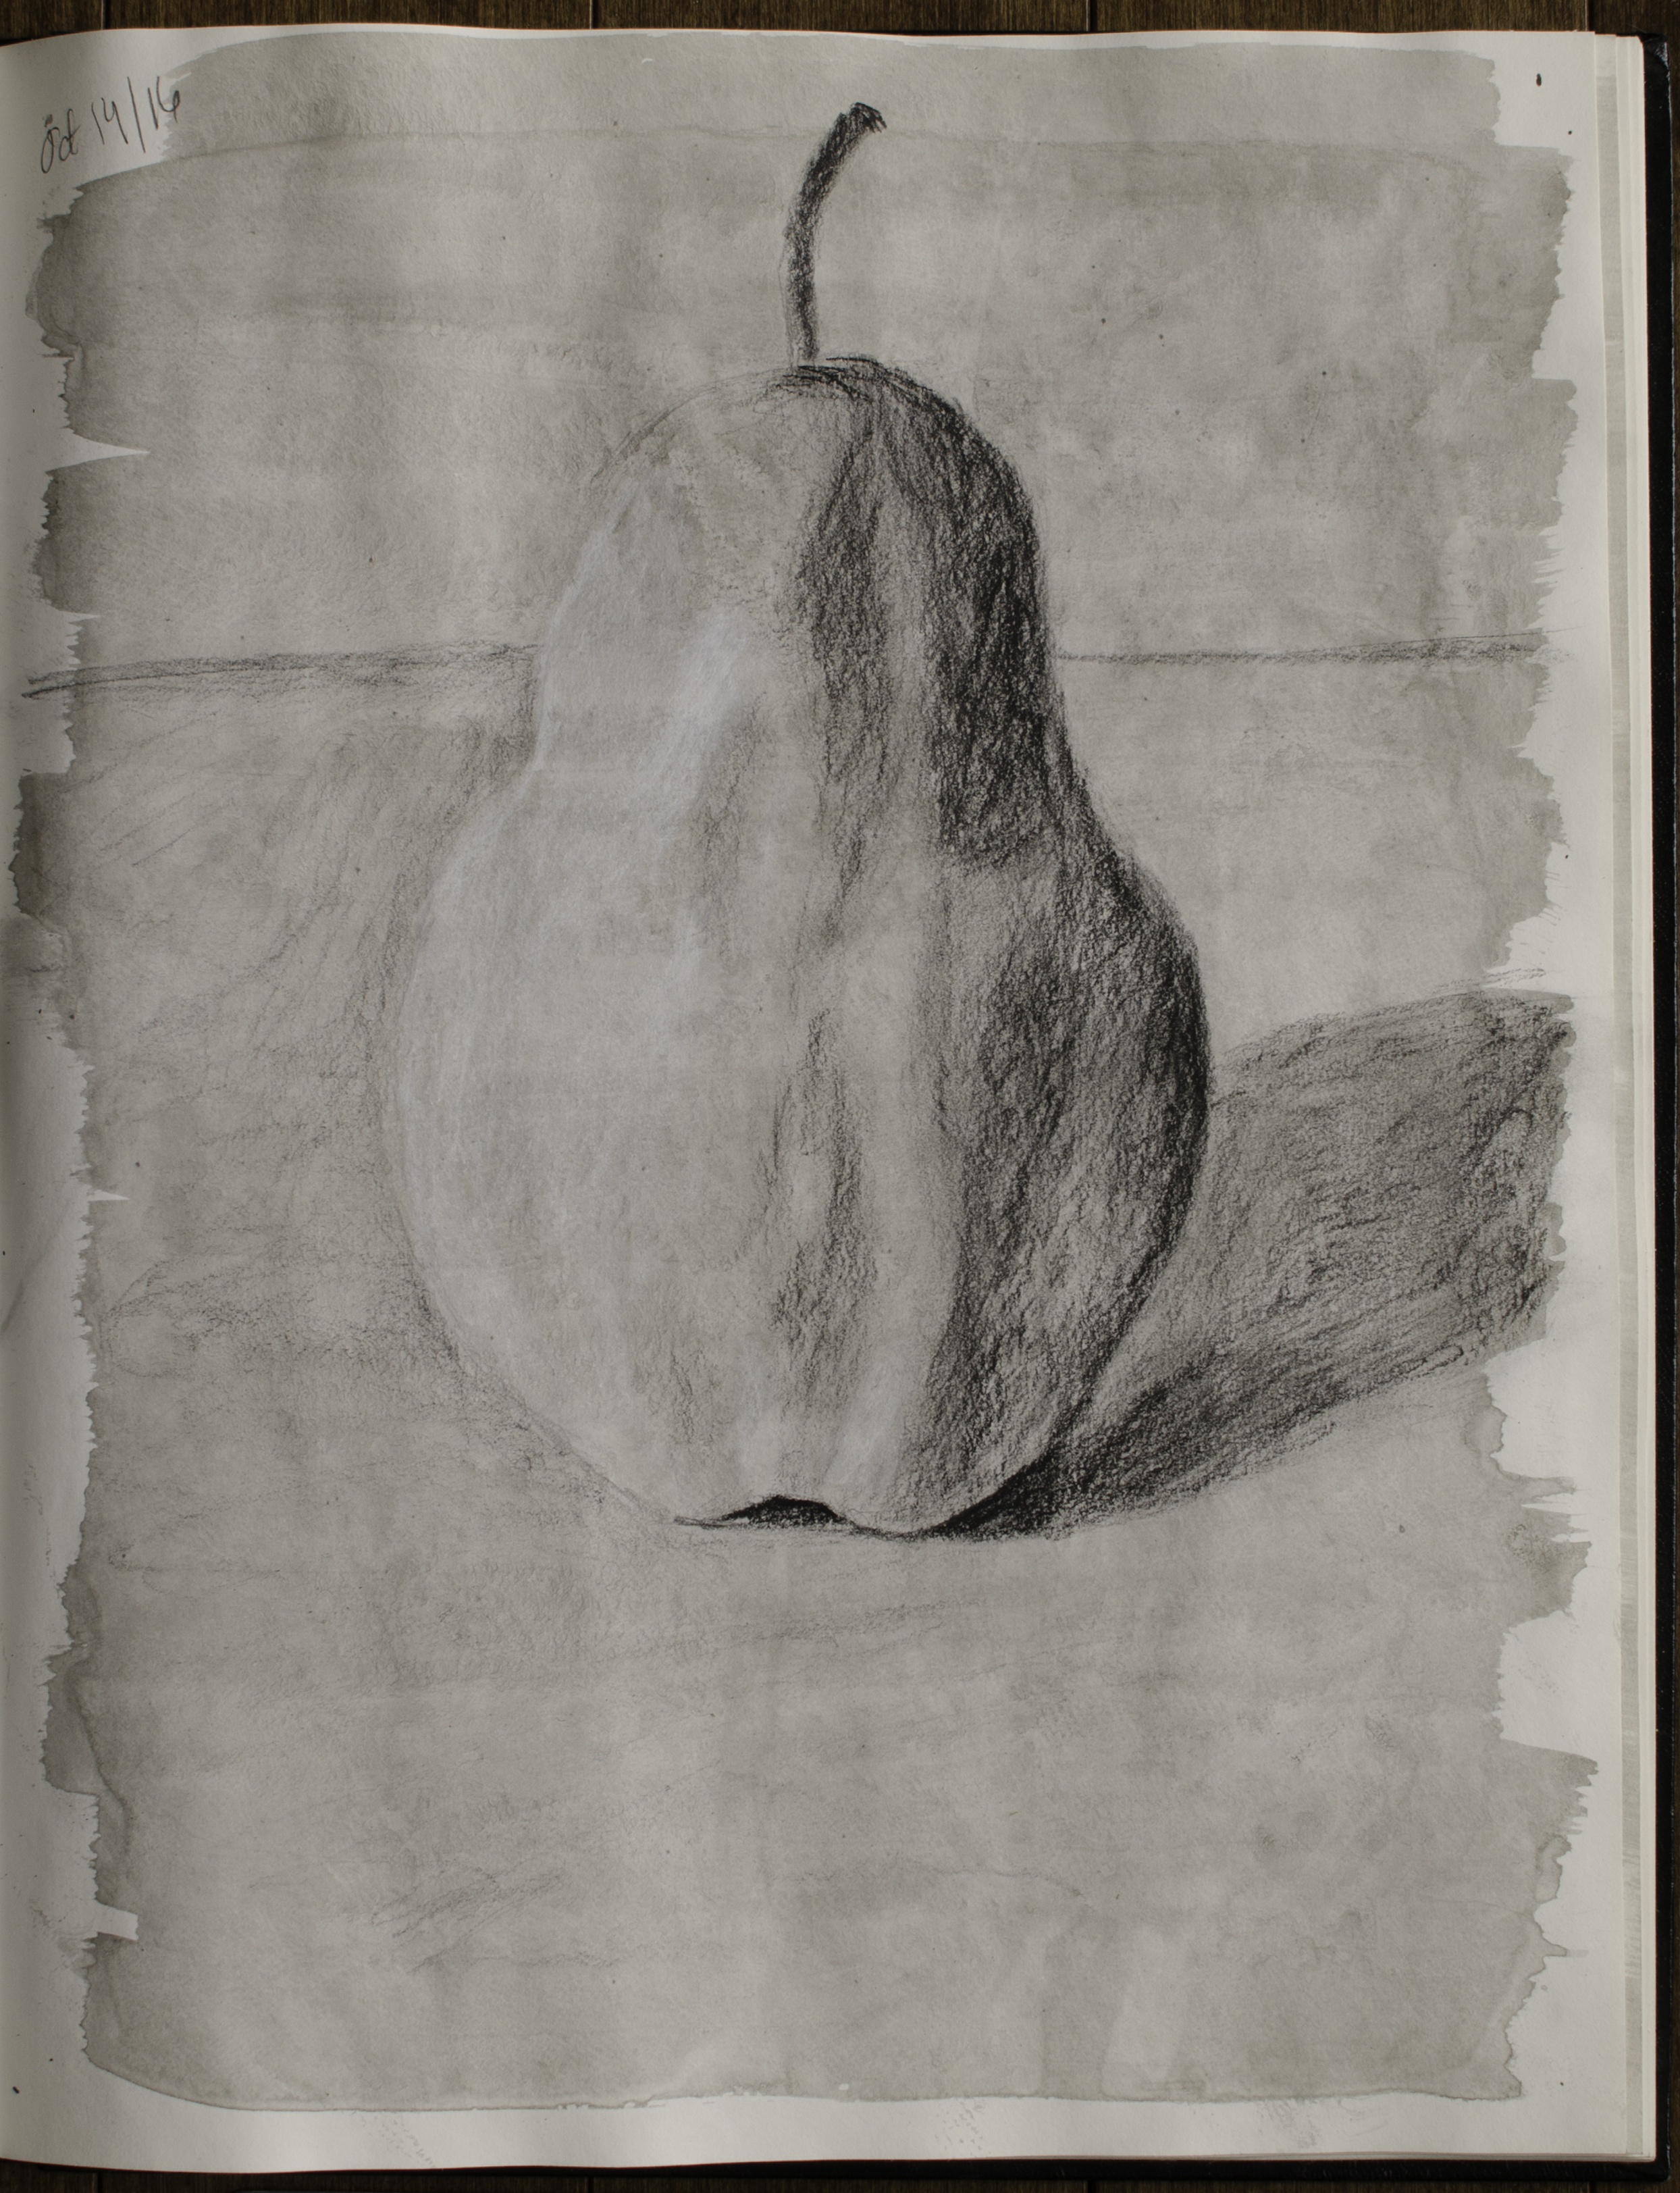 "Sketchbook Pear, Oct 14, 2016, Charcoal & India Ink on Paper, 10.5"" X 13.5"""